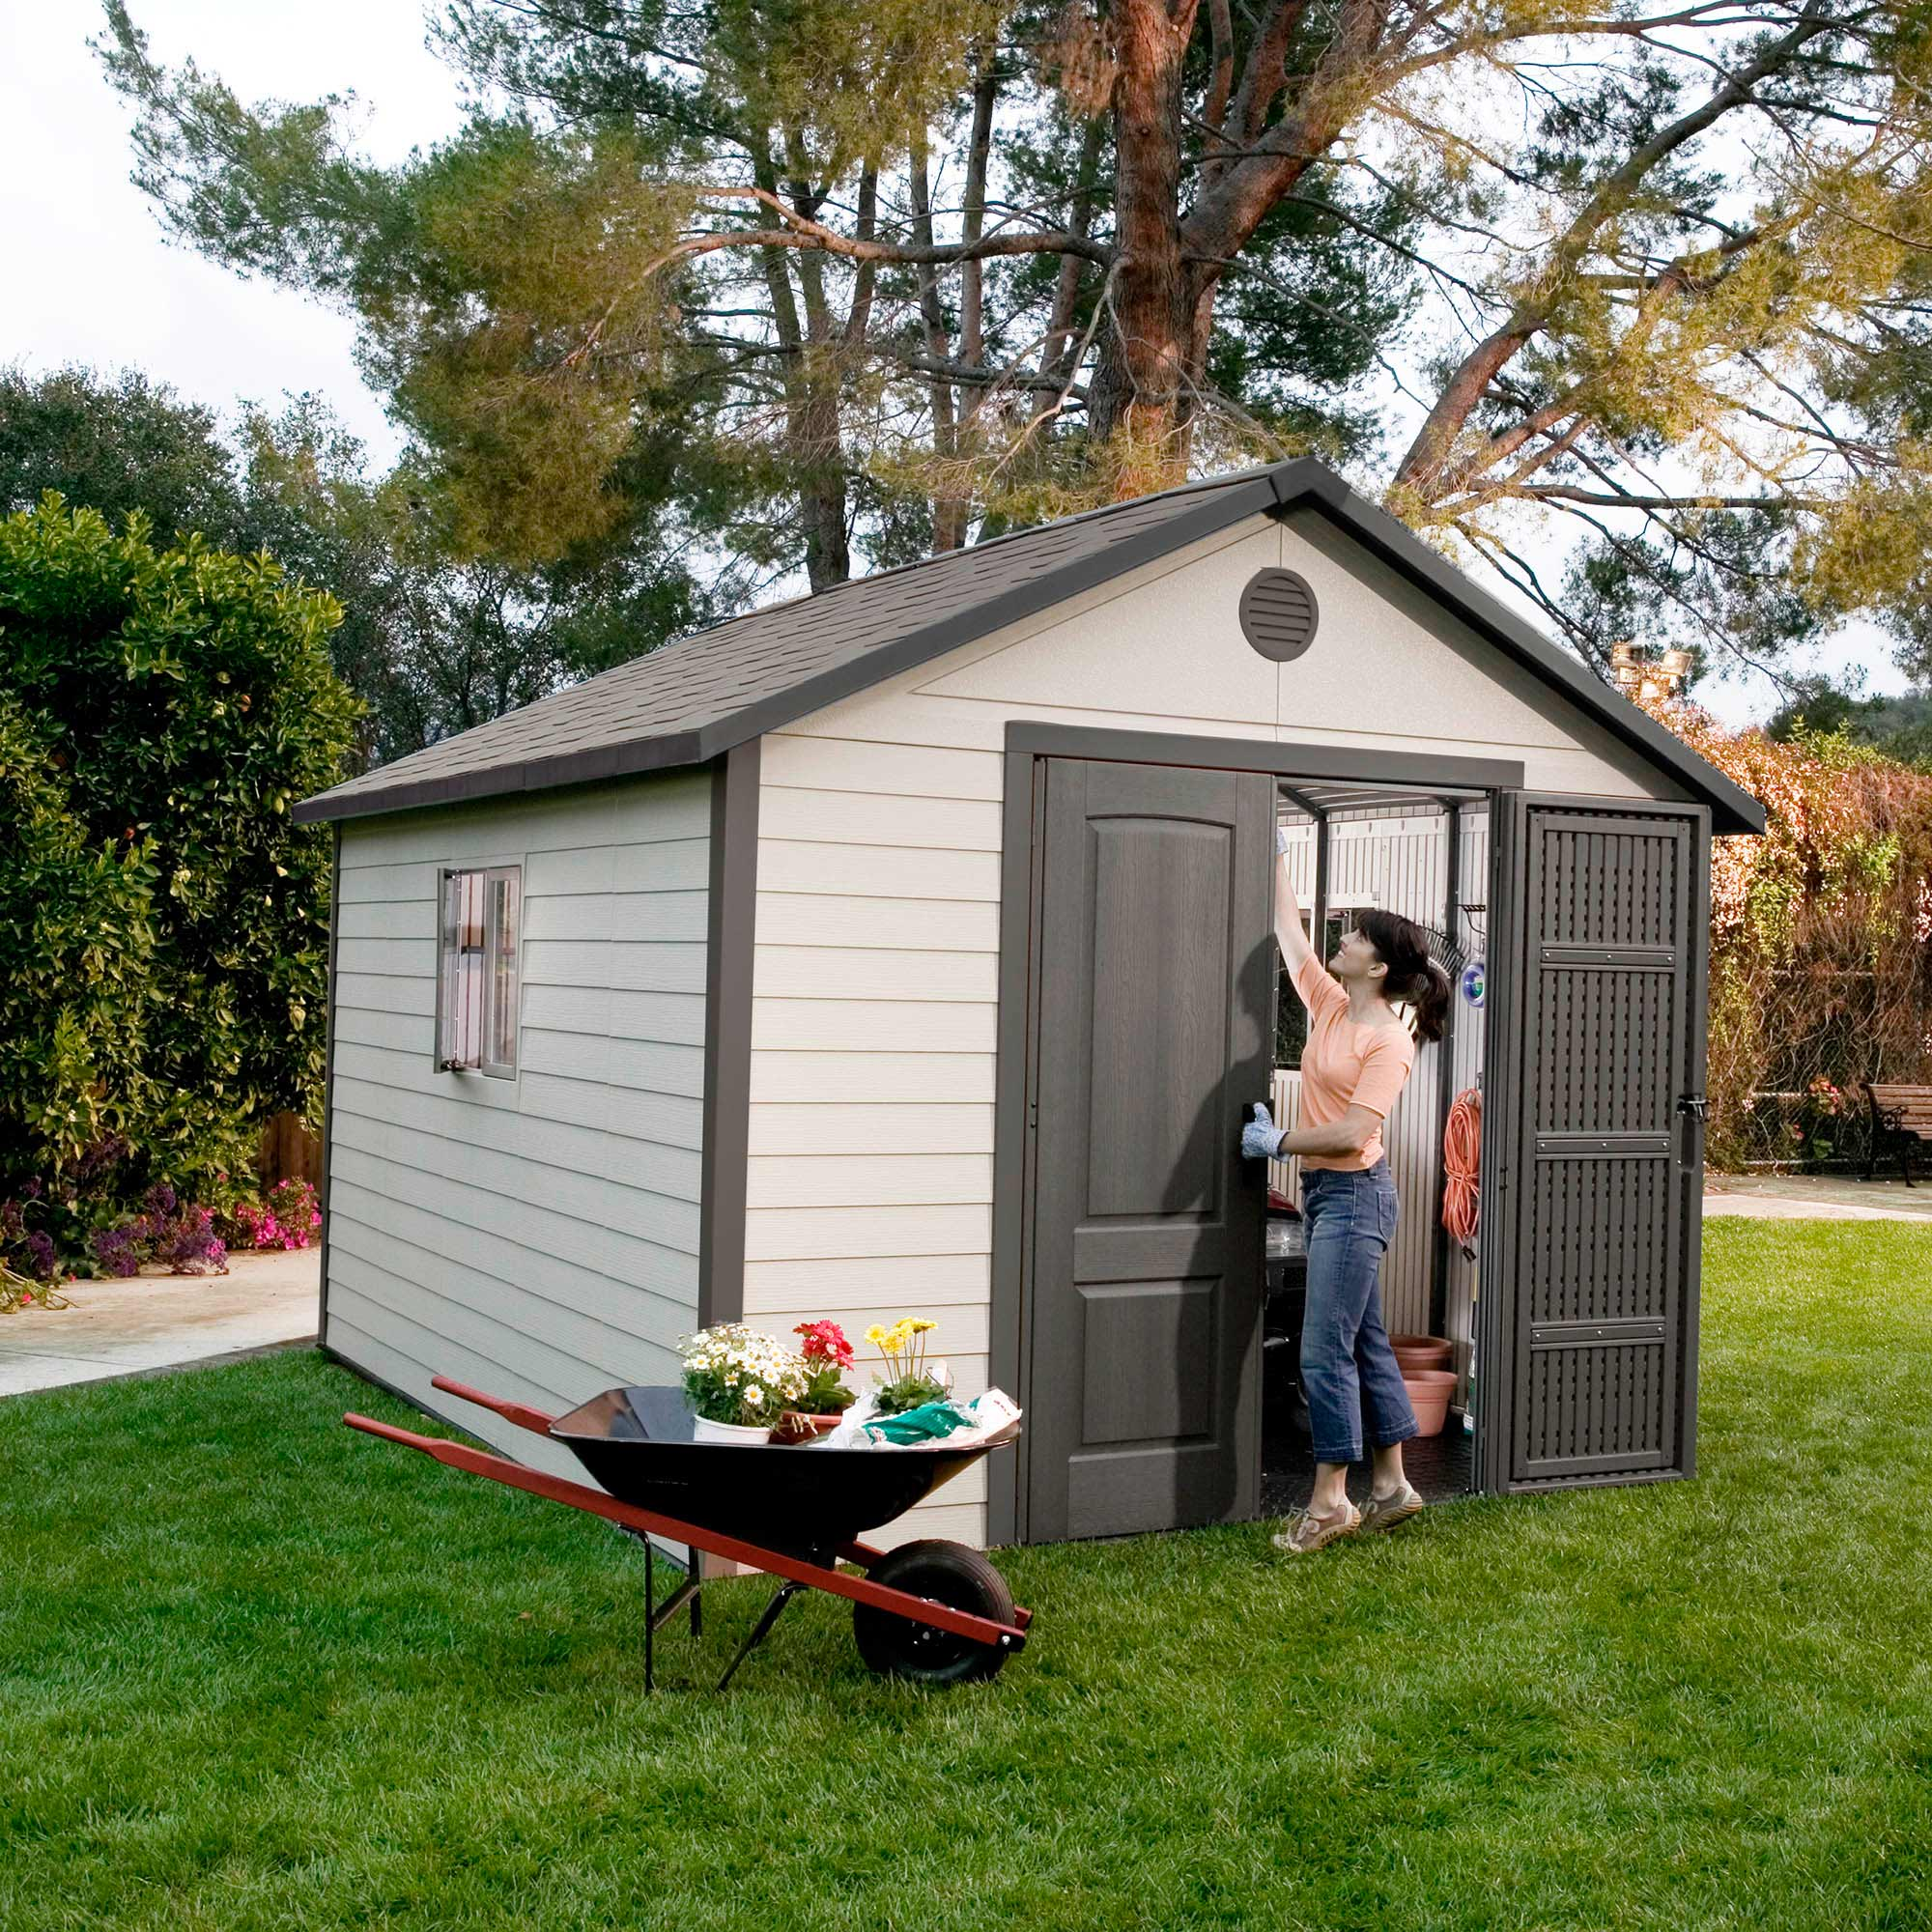 Image of 11' x 11' Lifetime Heavy Duty Plastic Shed (3.16m x 3.16m)